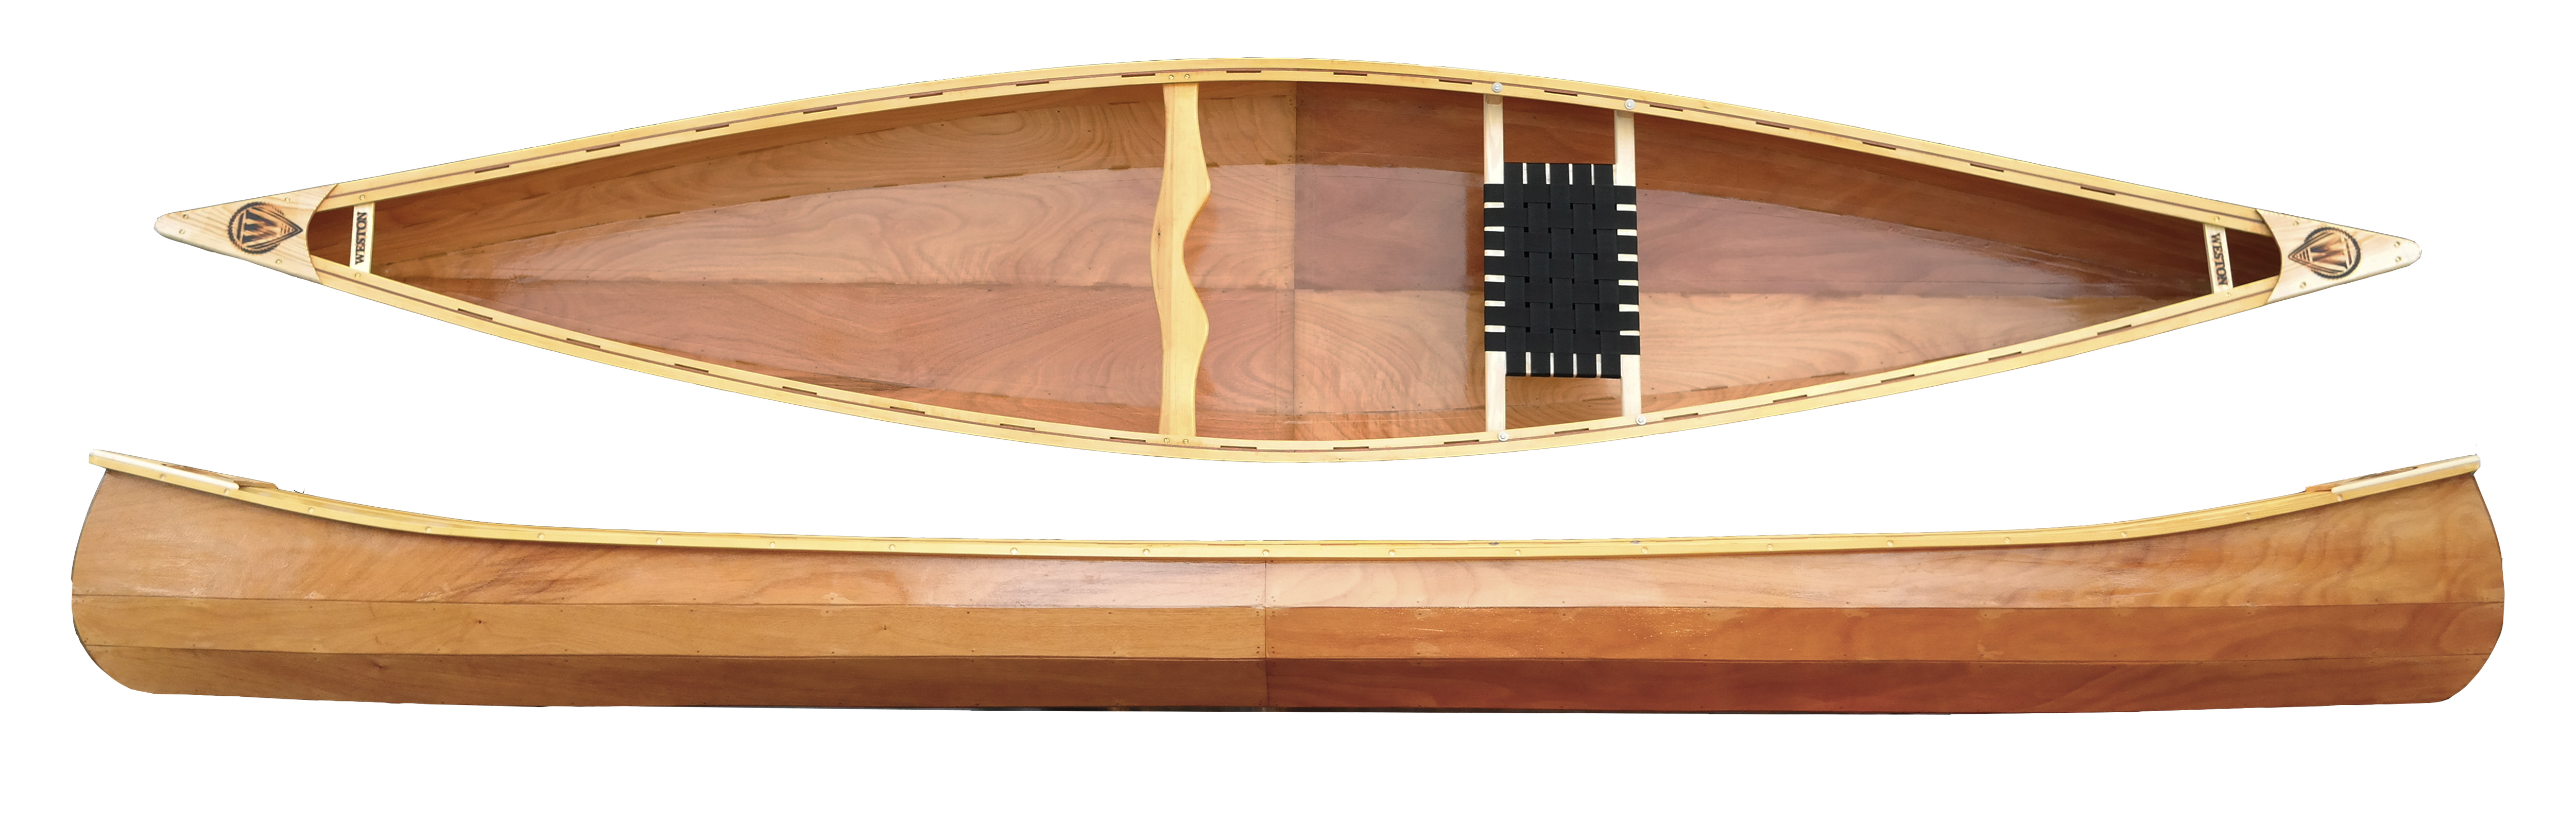 handmade beautiful wooden canoe